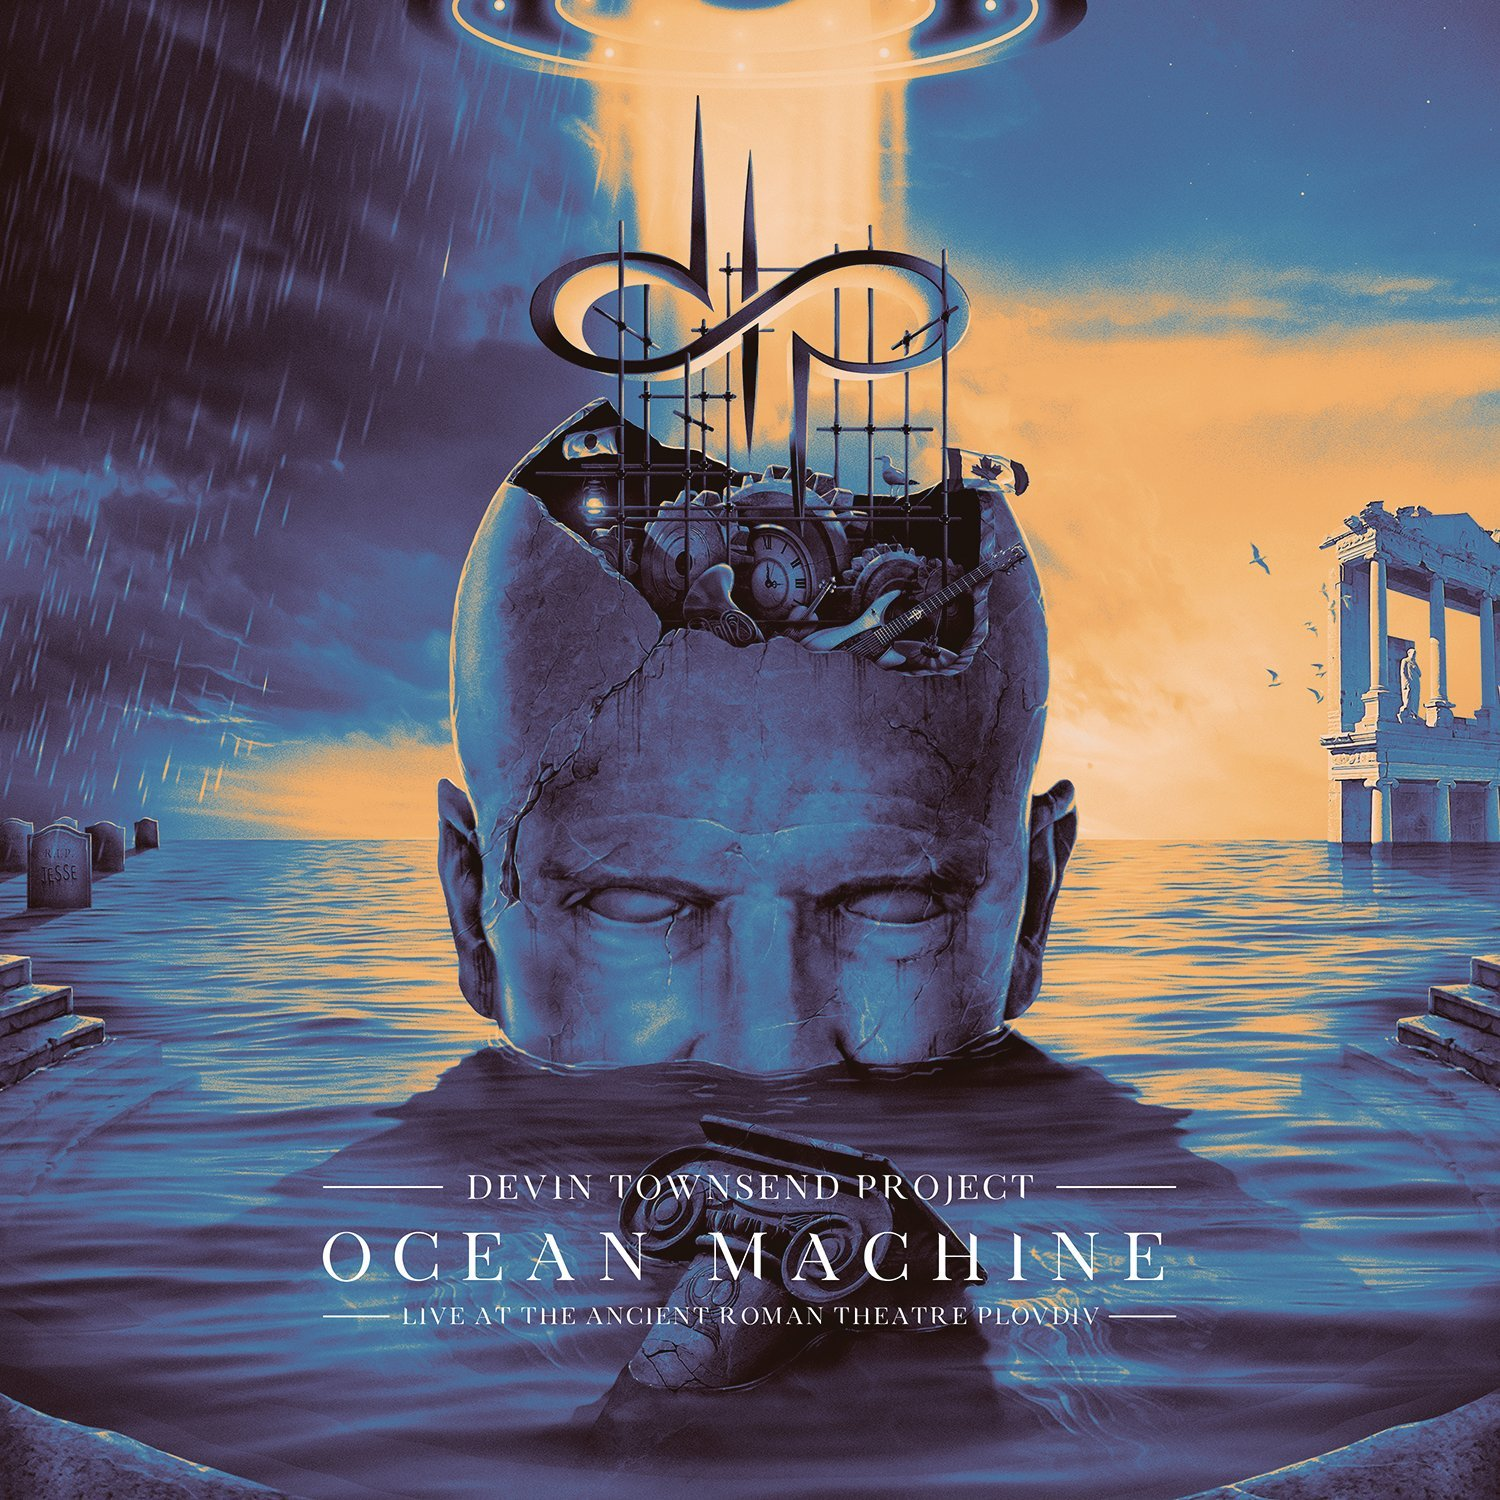 Devin Townsend Project - Ocean Machine - Live At The Ancient Roman Theatre Plovdiv [Import Limited Edition]